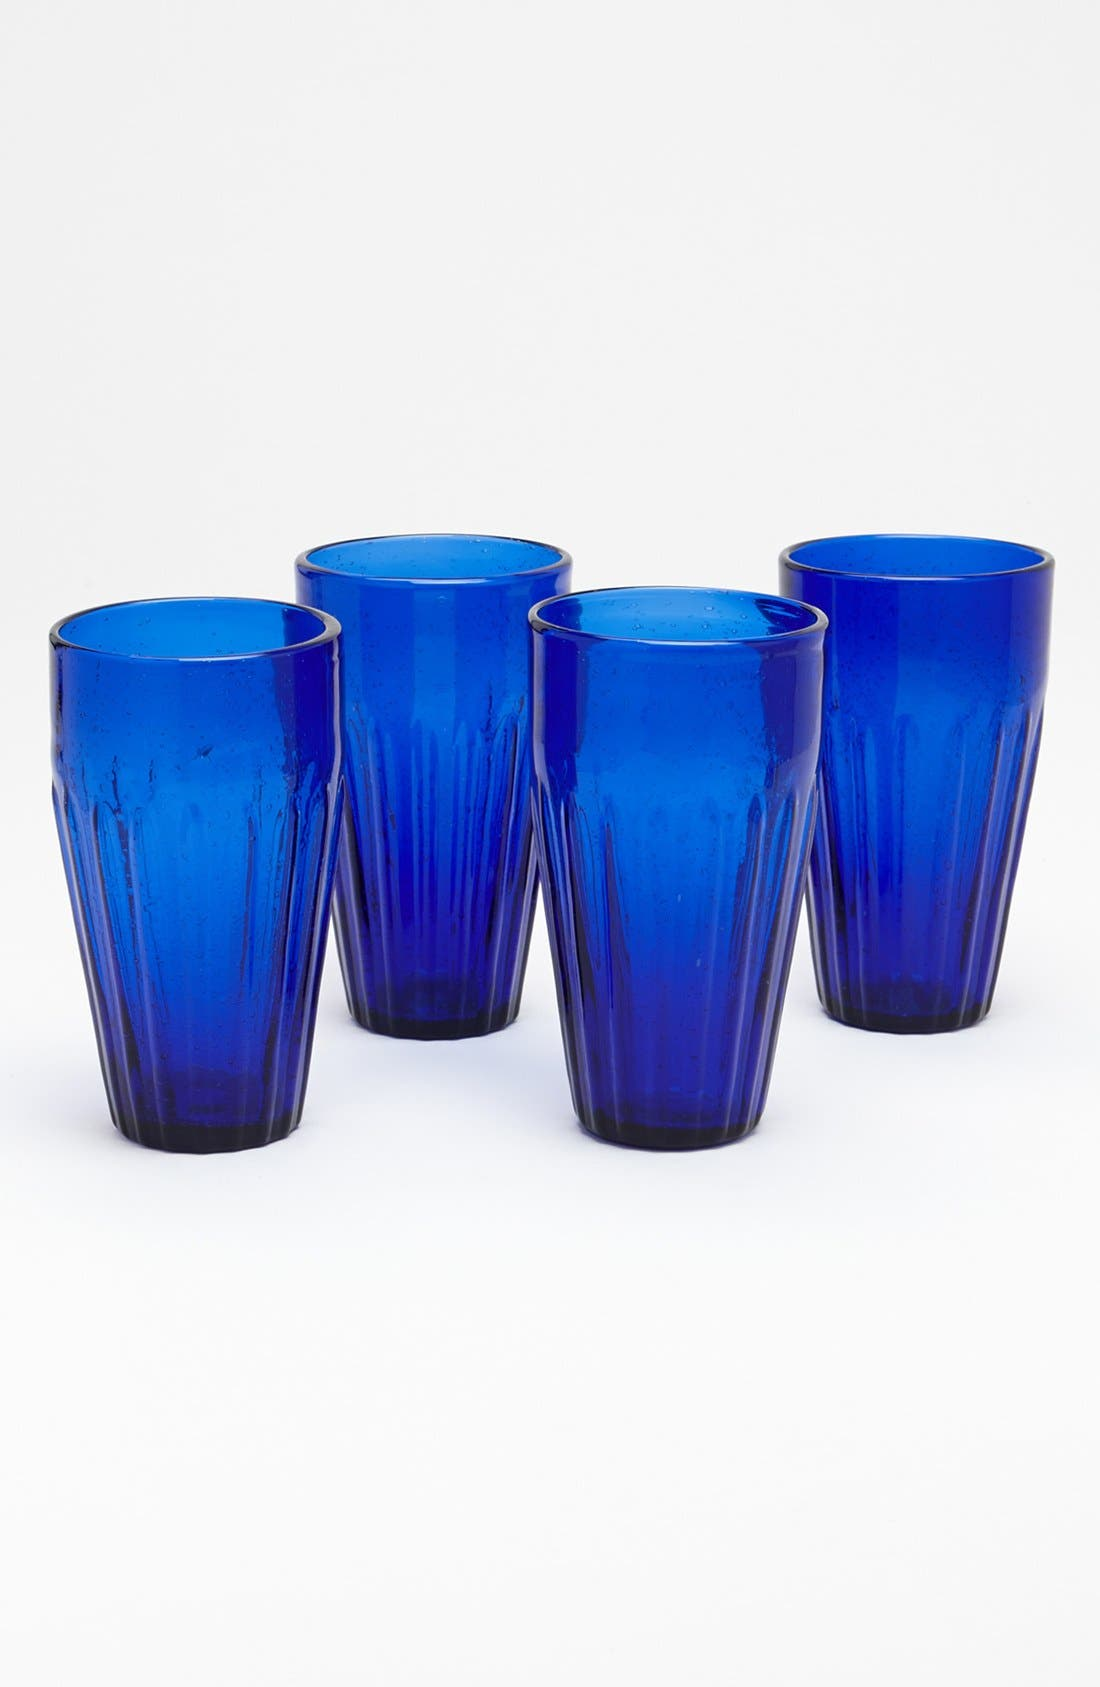 Main Image - Rustic Cooler Glasses (Set of 4)